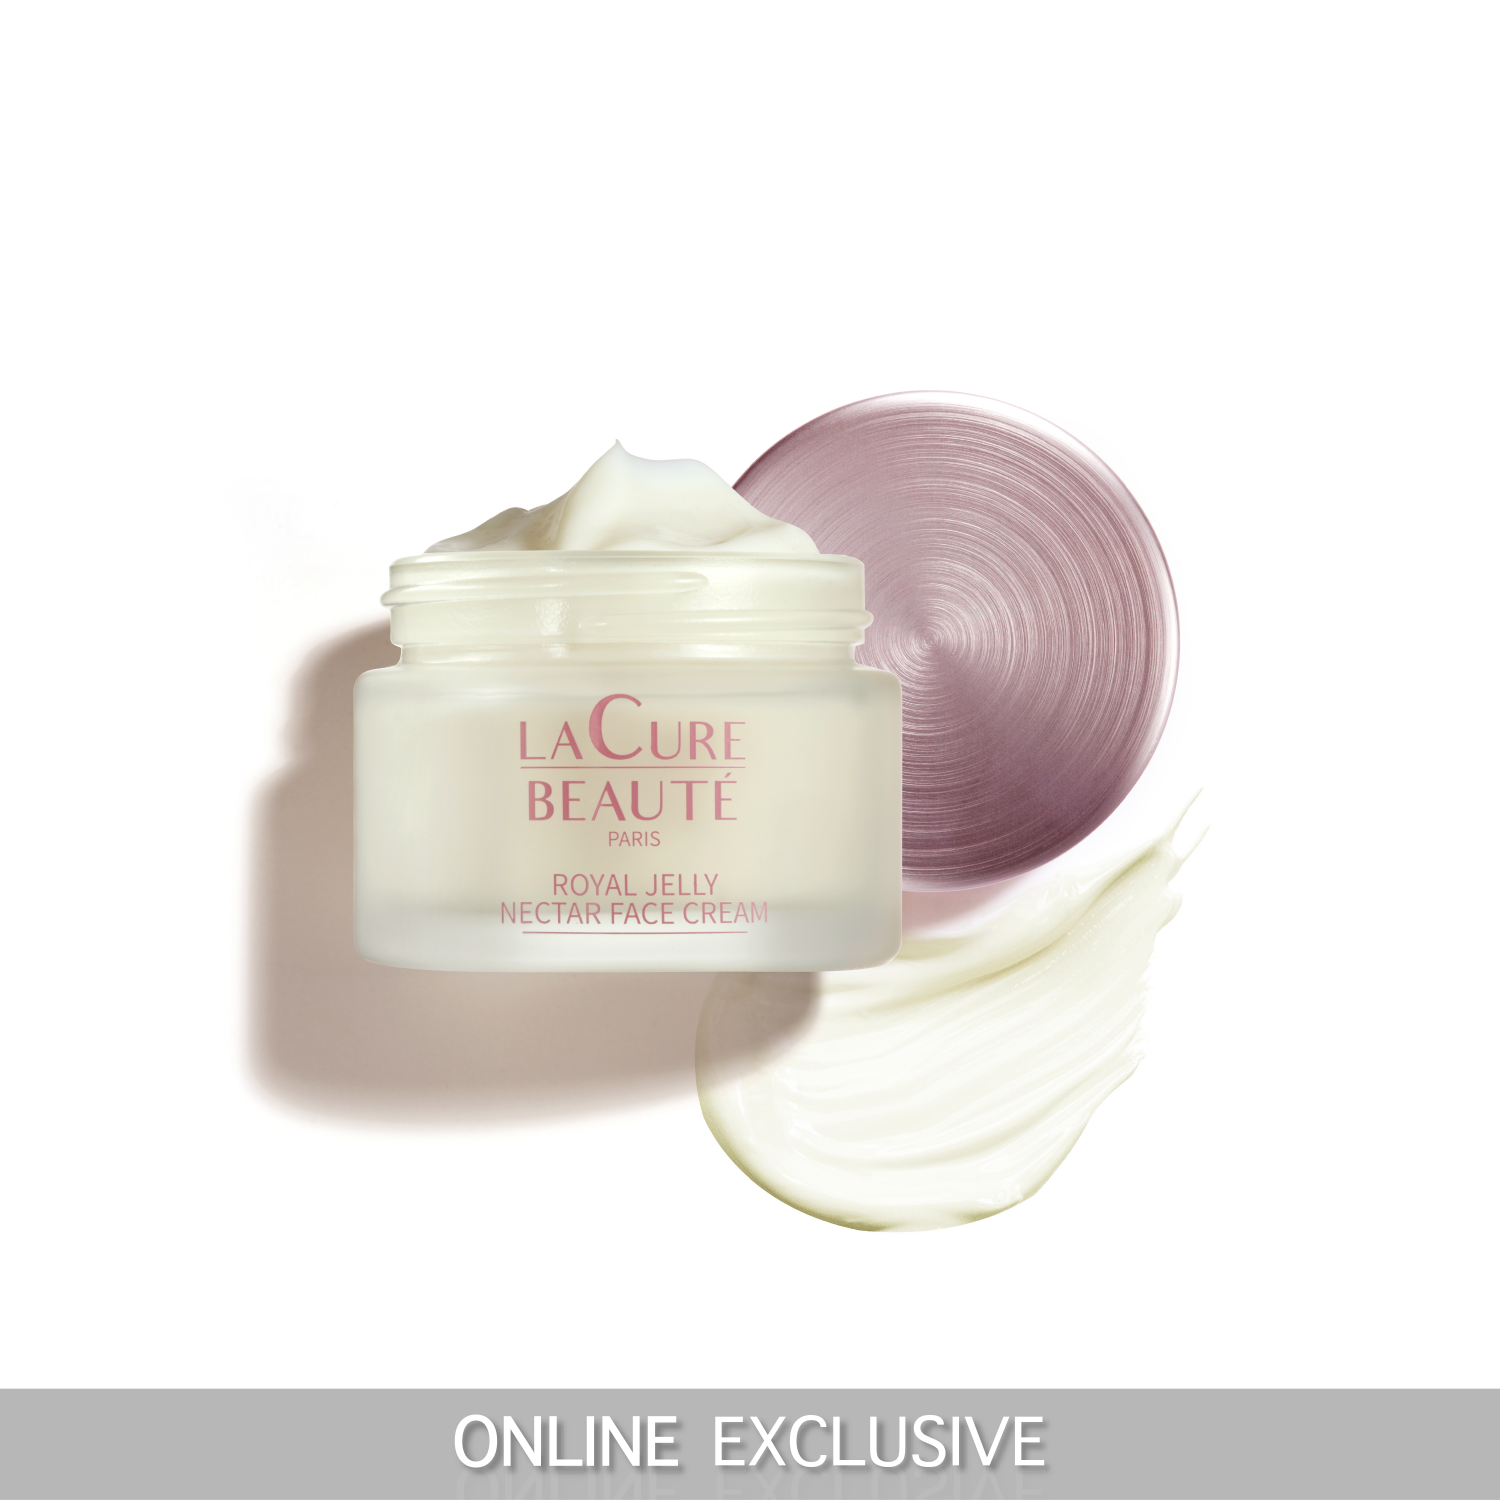 Royal Jelly Nectar Face Cream